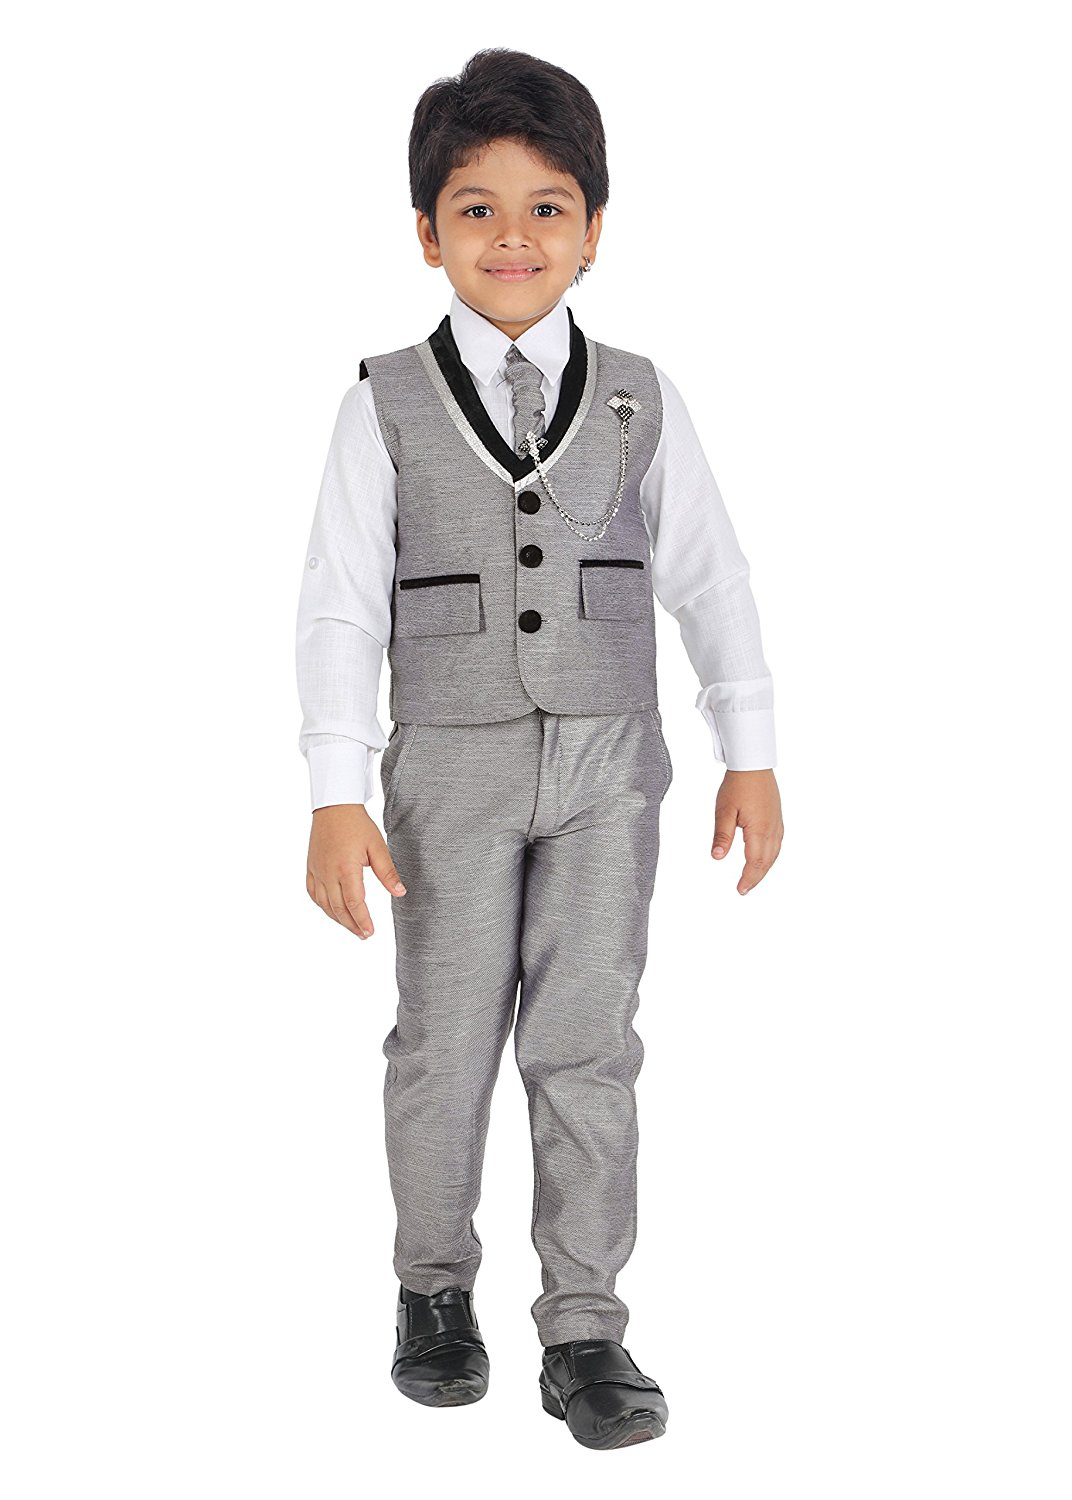 87270eb88ce Get Quotations · ahhaaaa kids Indian ethnic outfits wedding and party wear  waistcoat suit set for boys